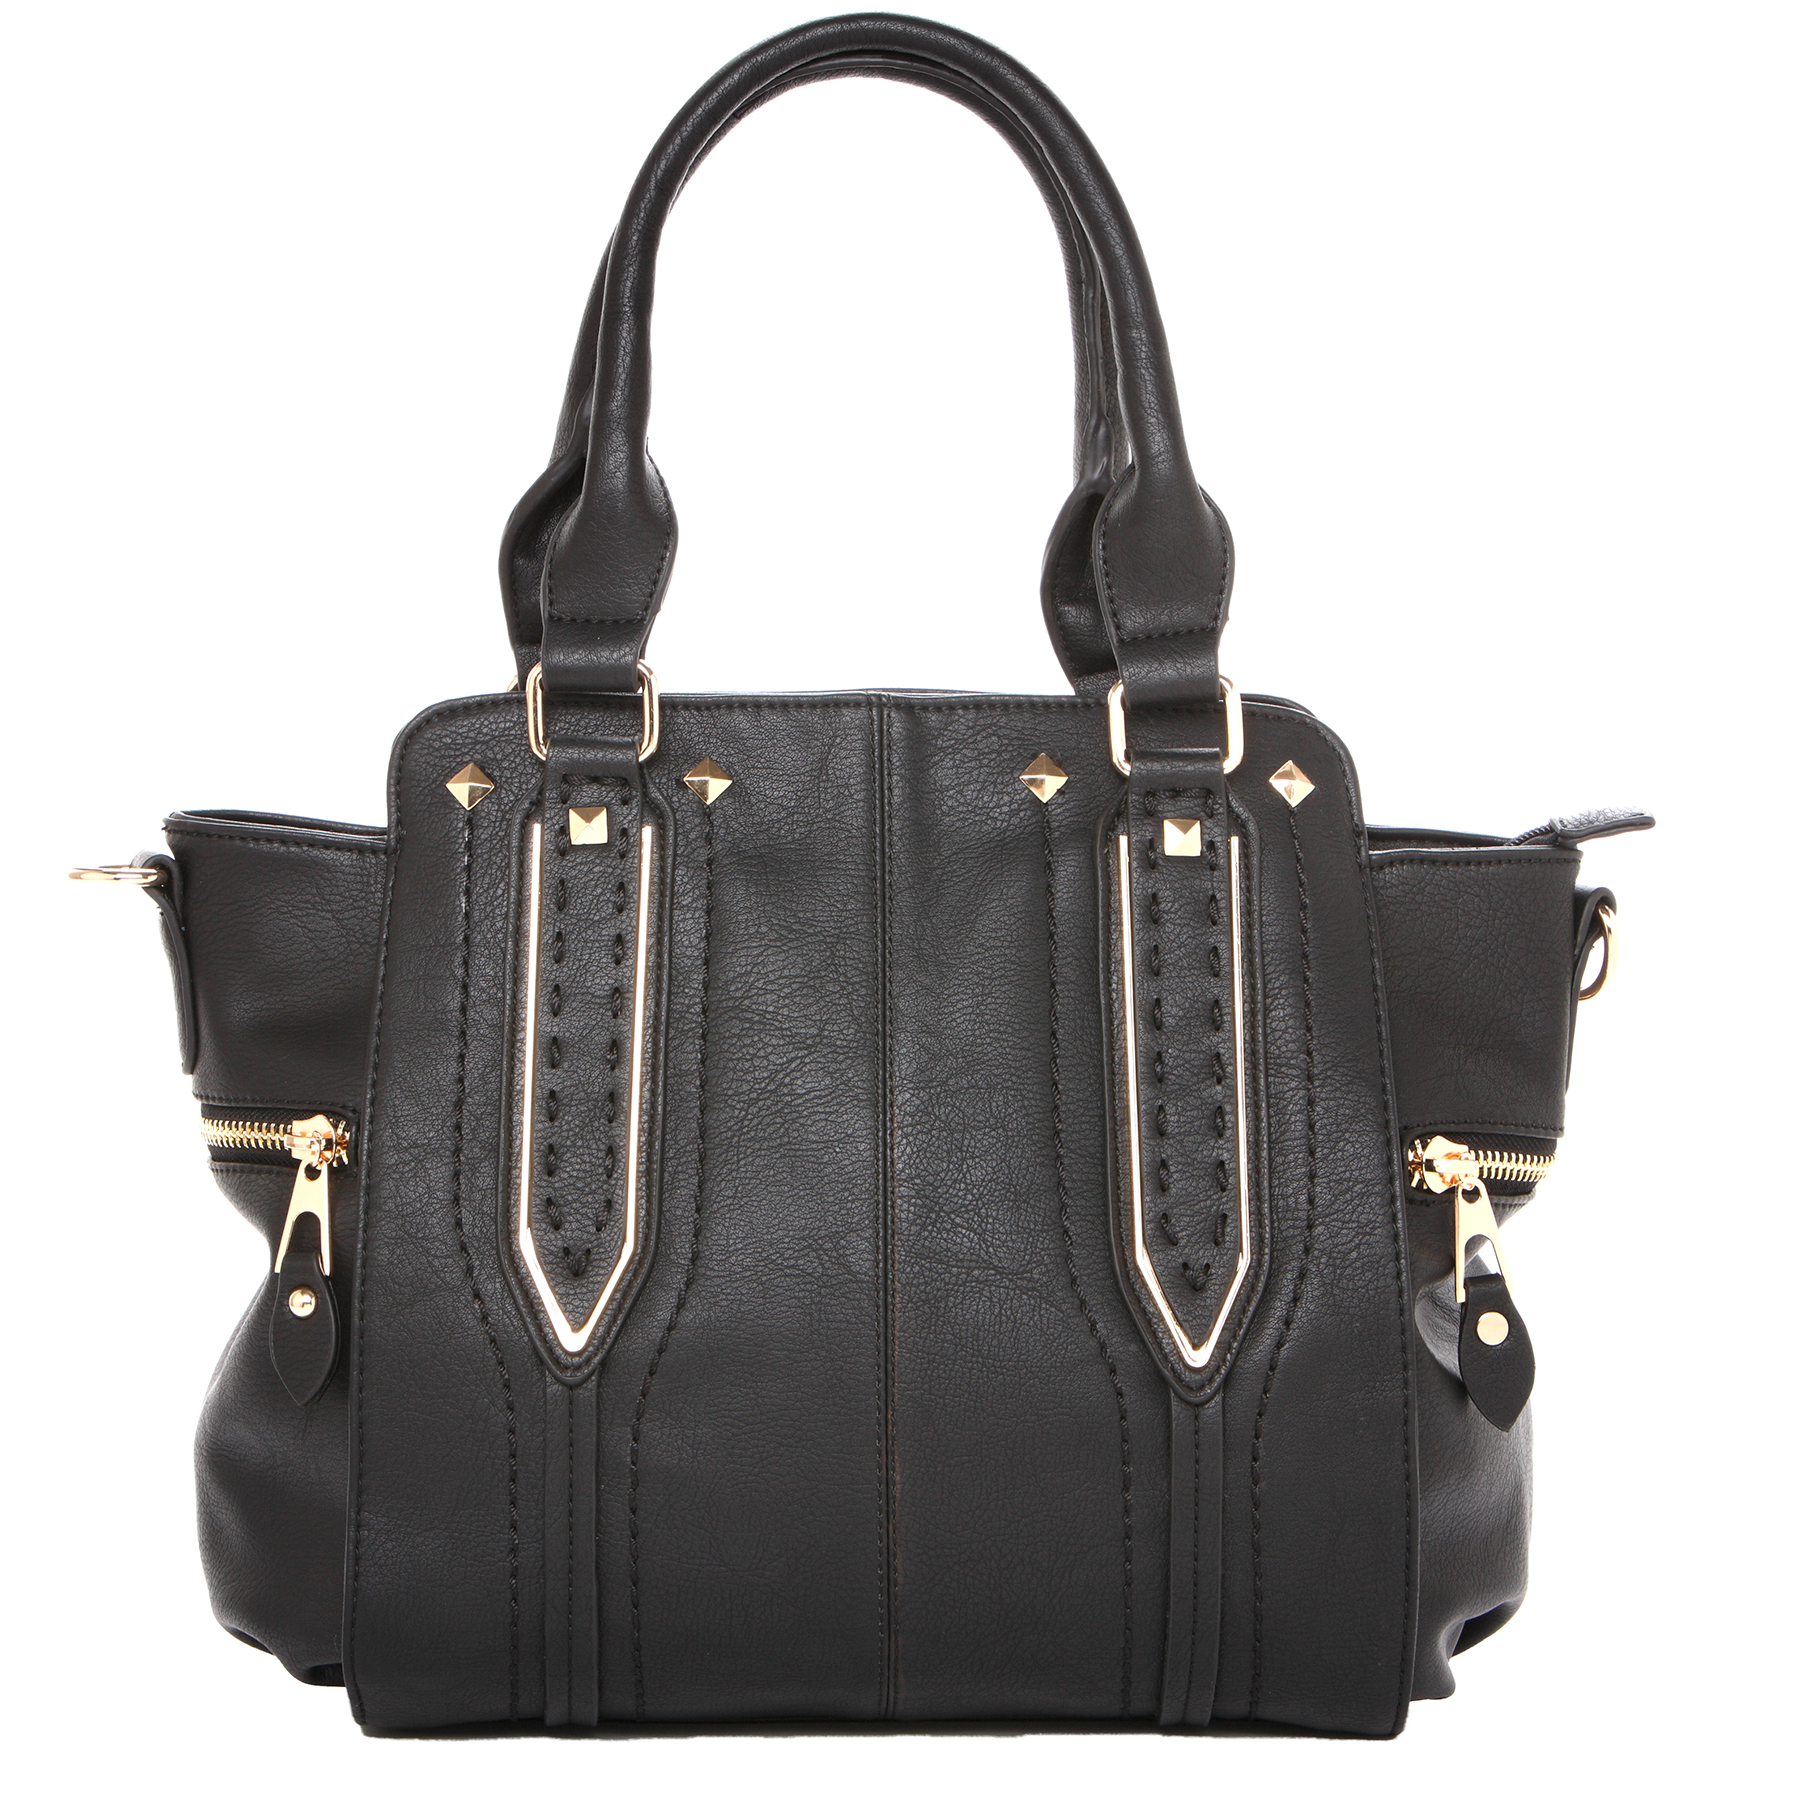 NORI Black Top Handle Office Tote Style Handbag front